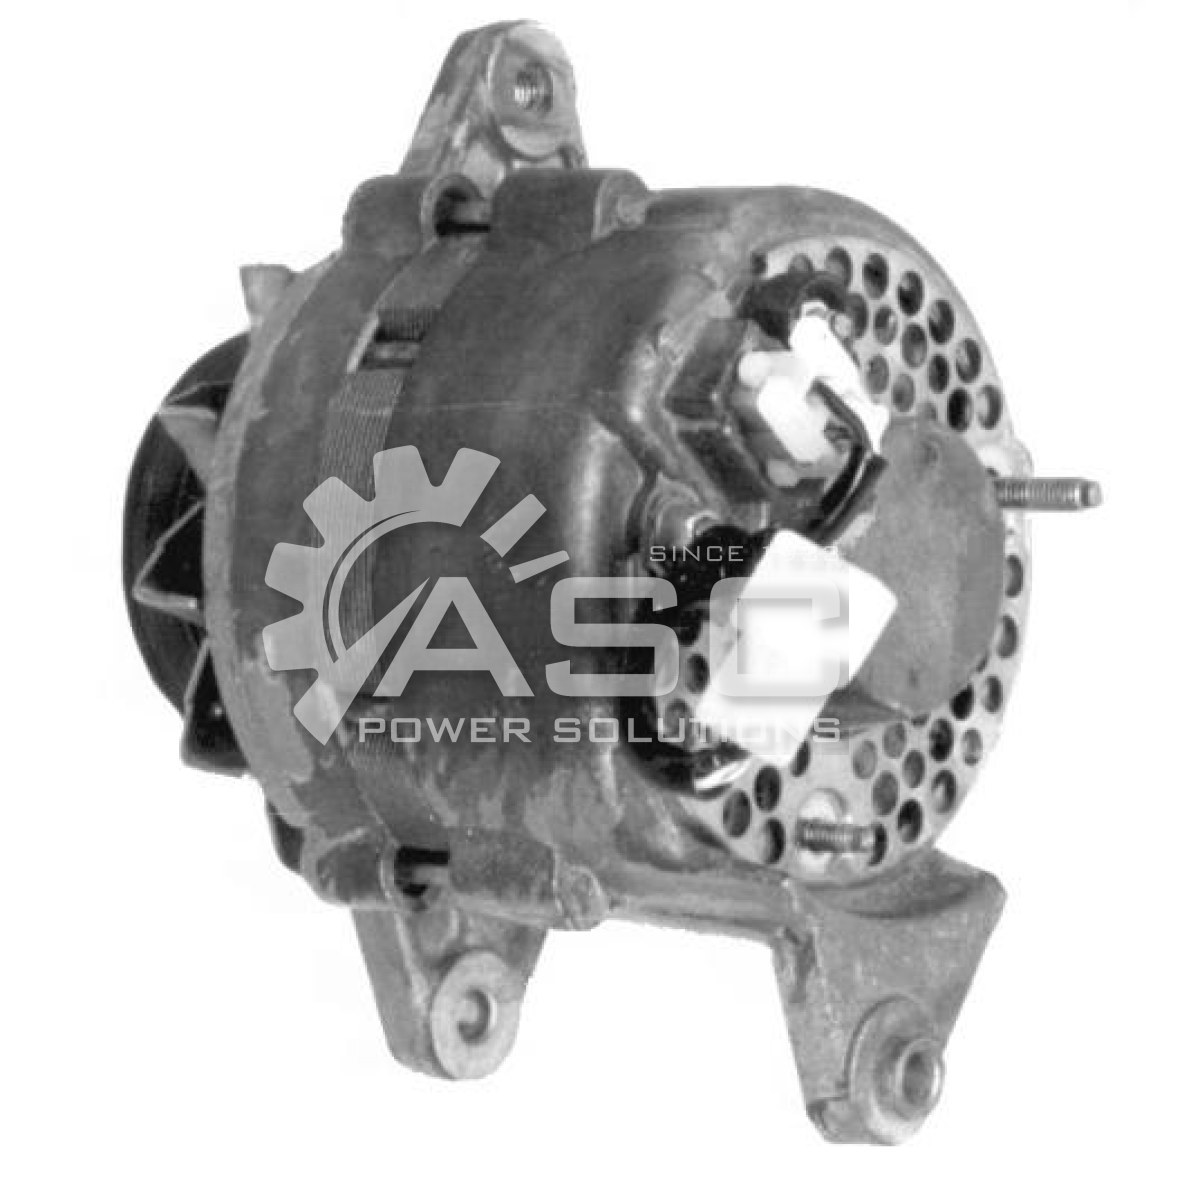 A521047_ASC, Alternator, 12V, 35 Amp, ER, CW, V1, DENSO, Reman